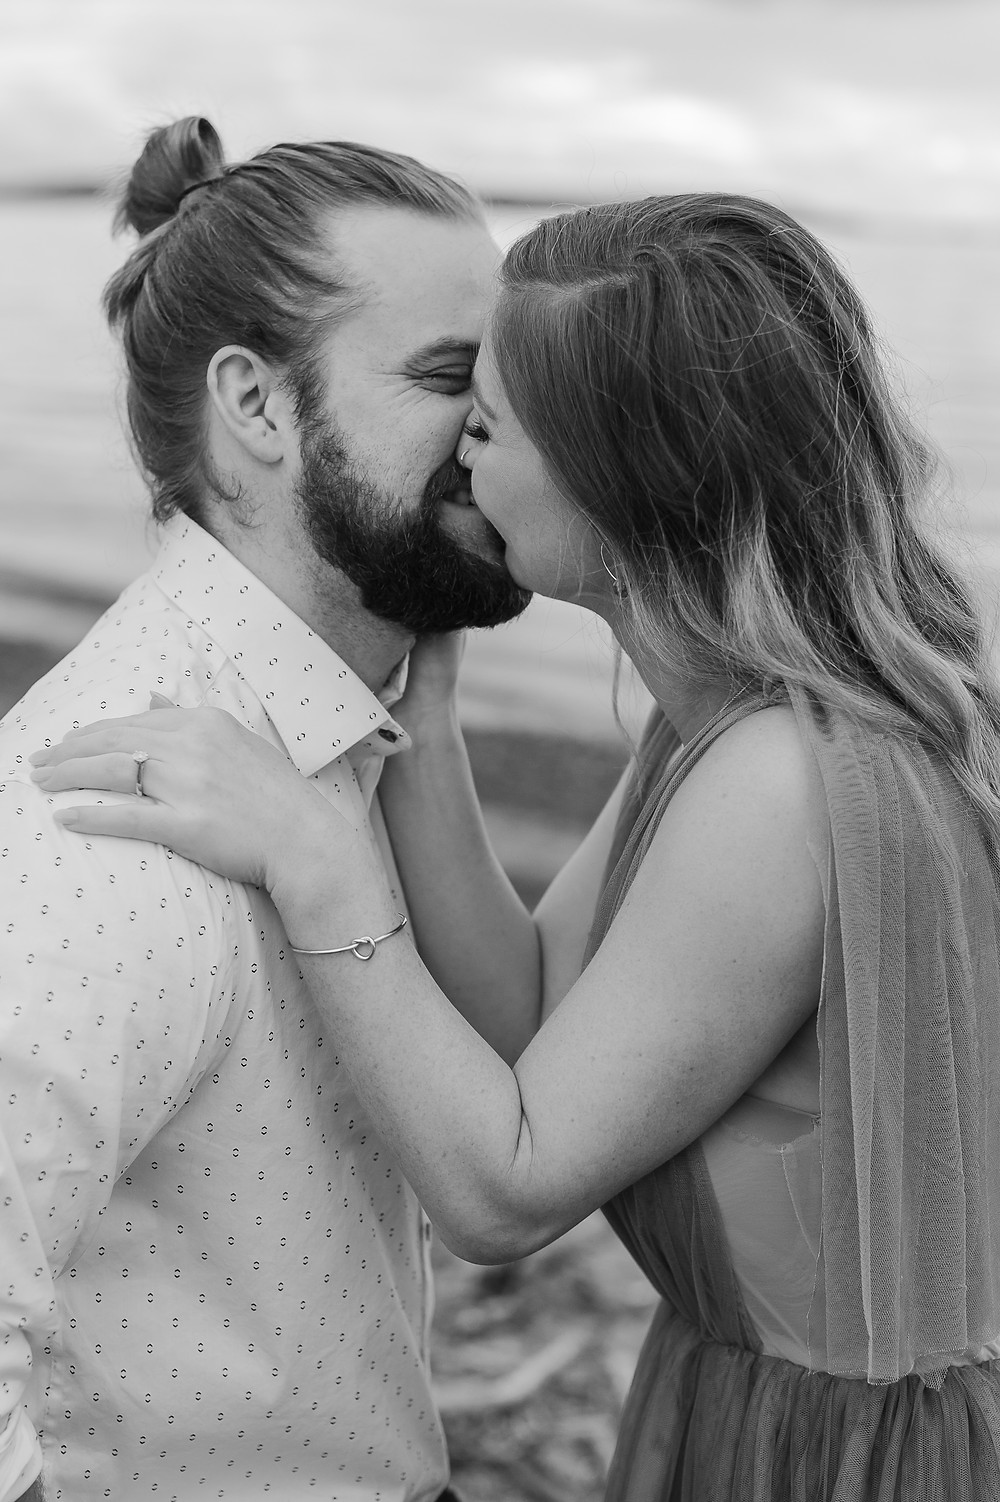 Seattle Beach Elopement at Discovery Park Black and White Kiss With Teeth